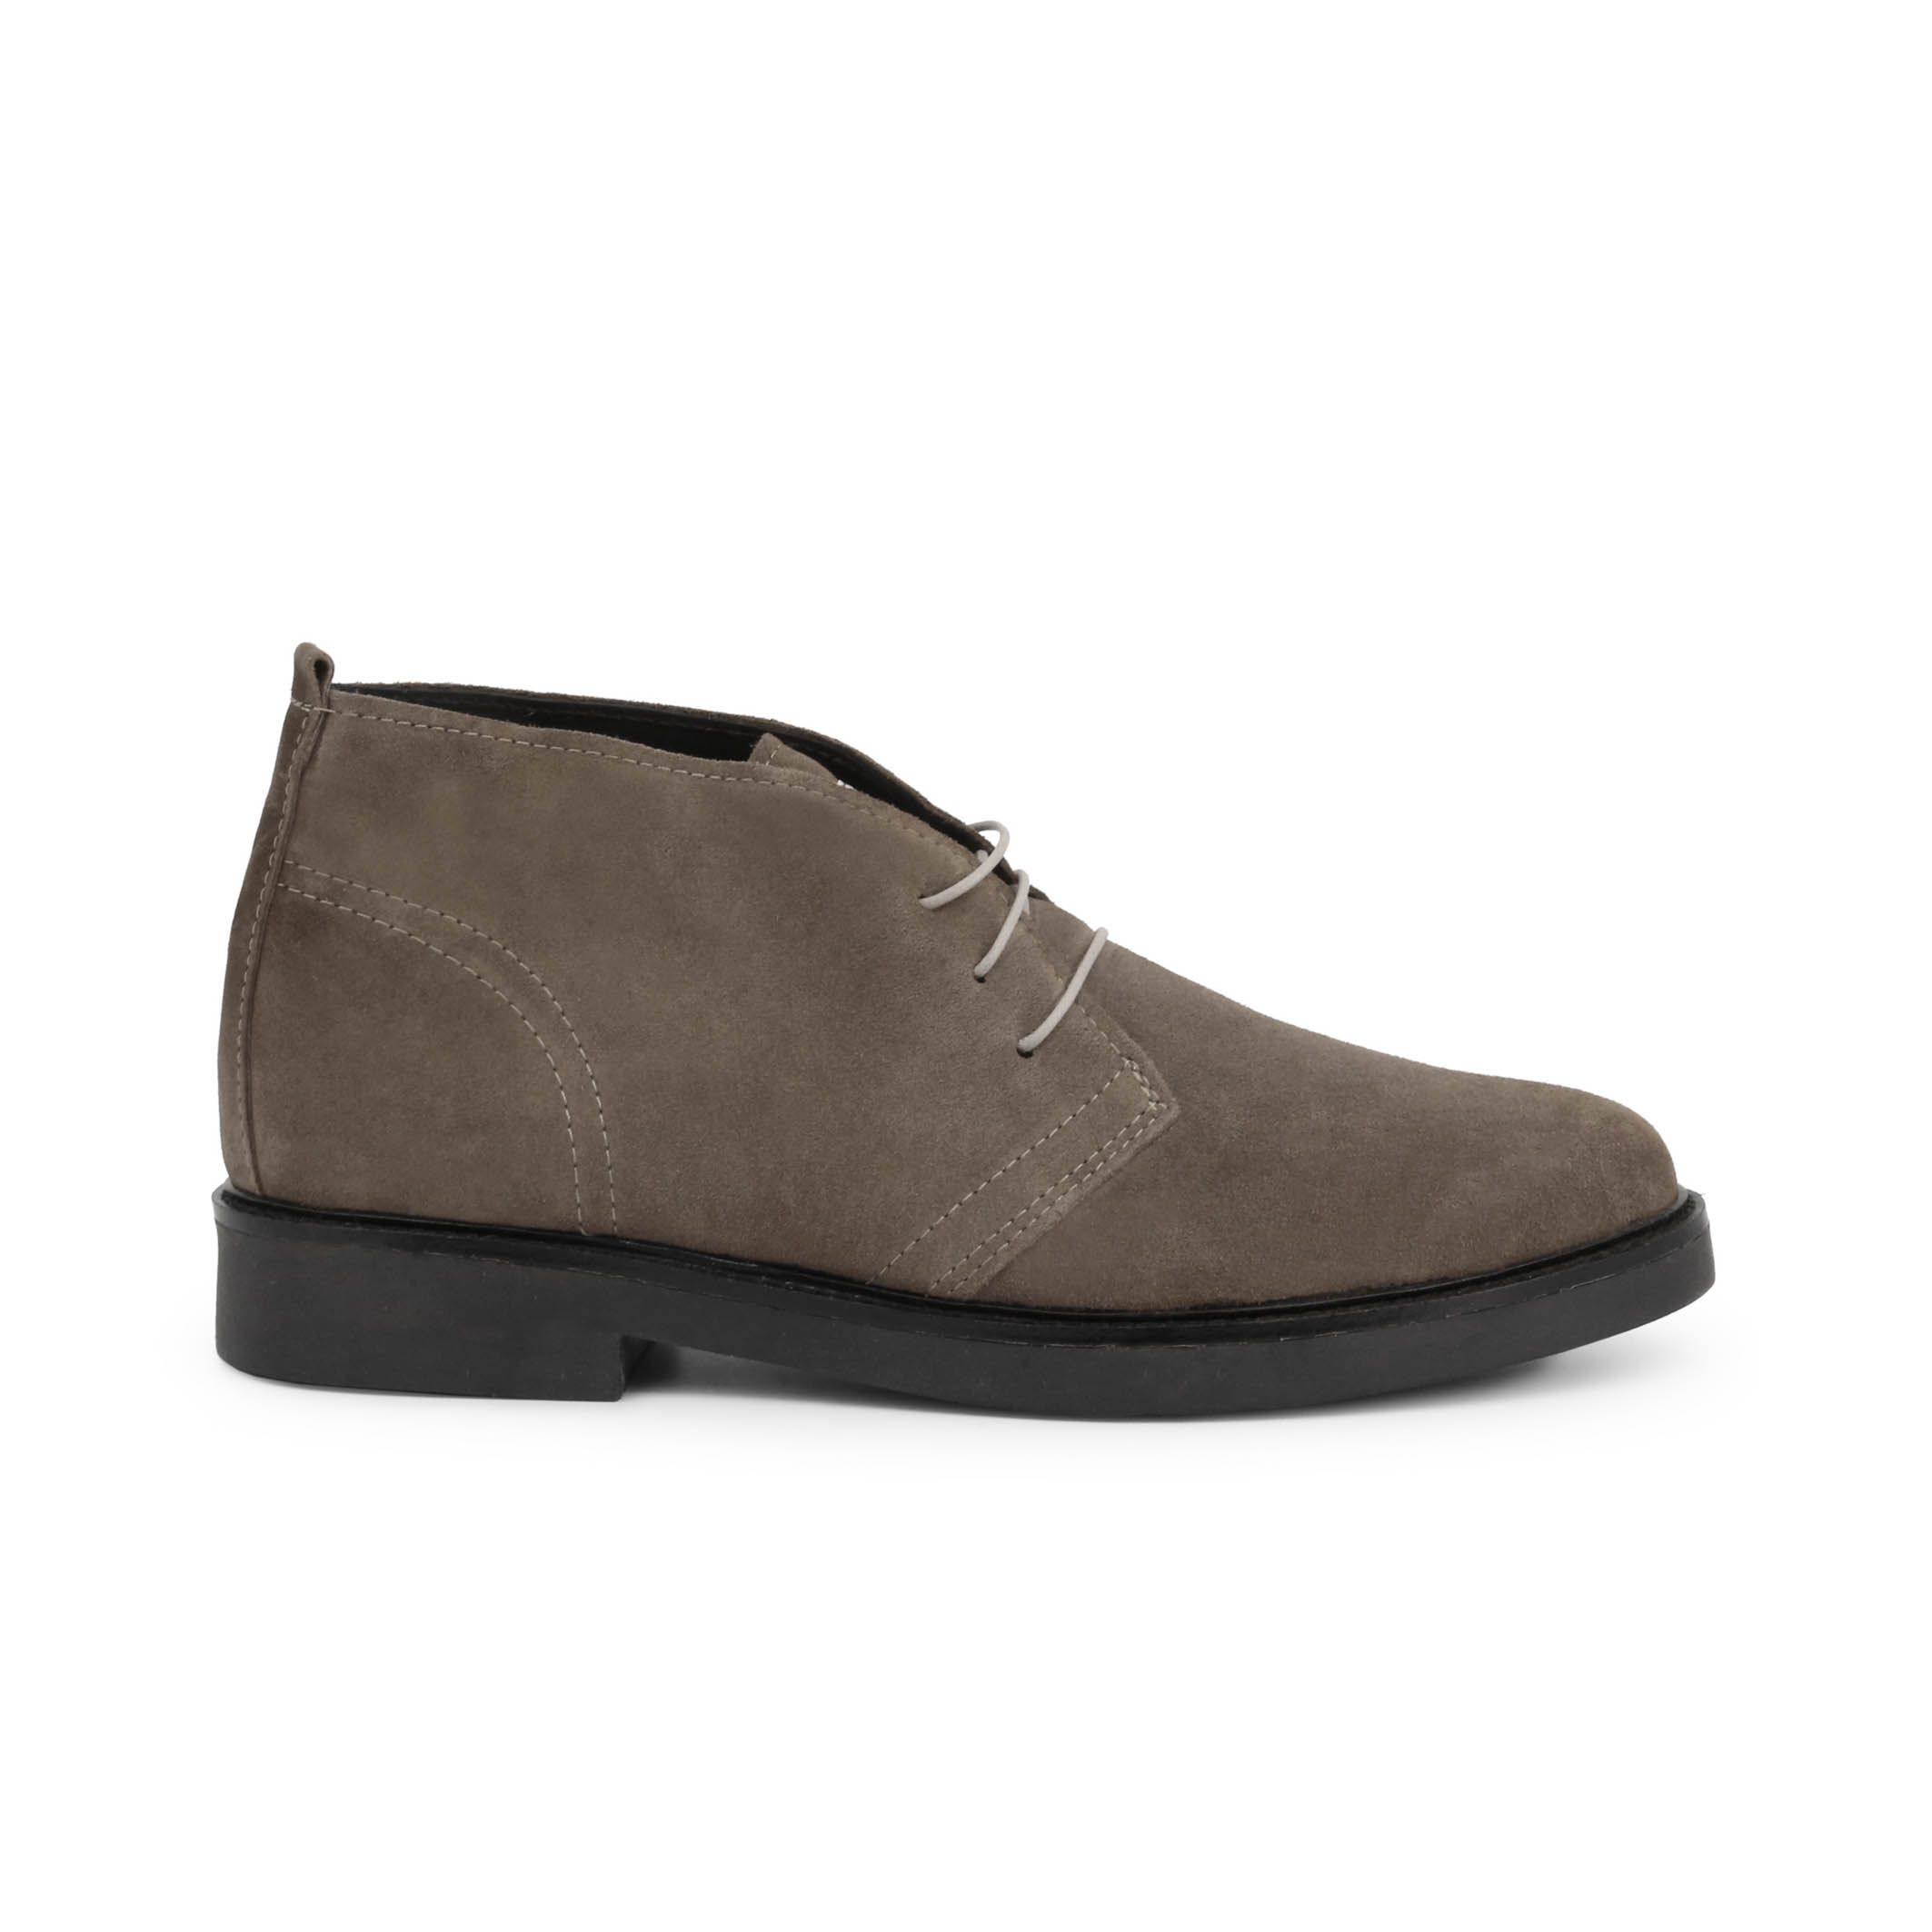 Chaussures Marco Nils – 233_CAMOSCIO